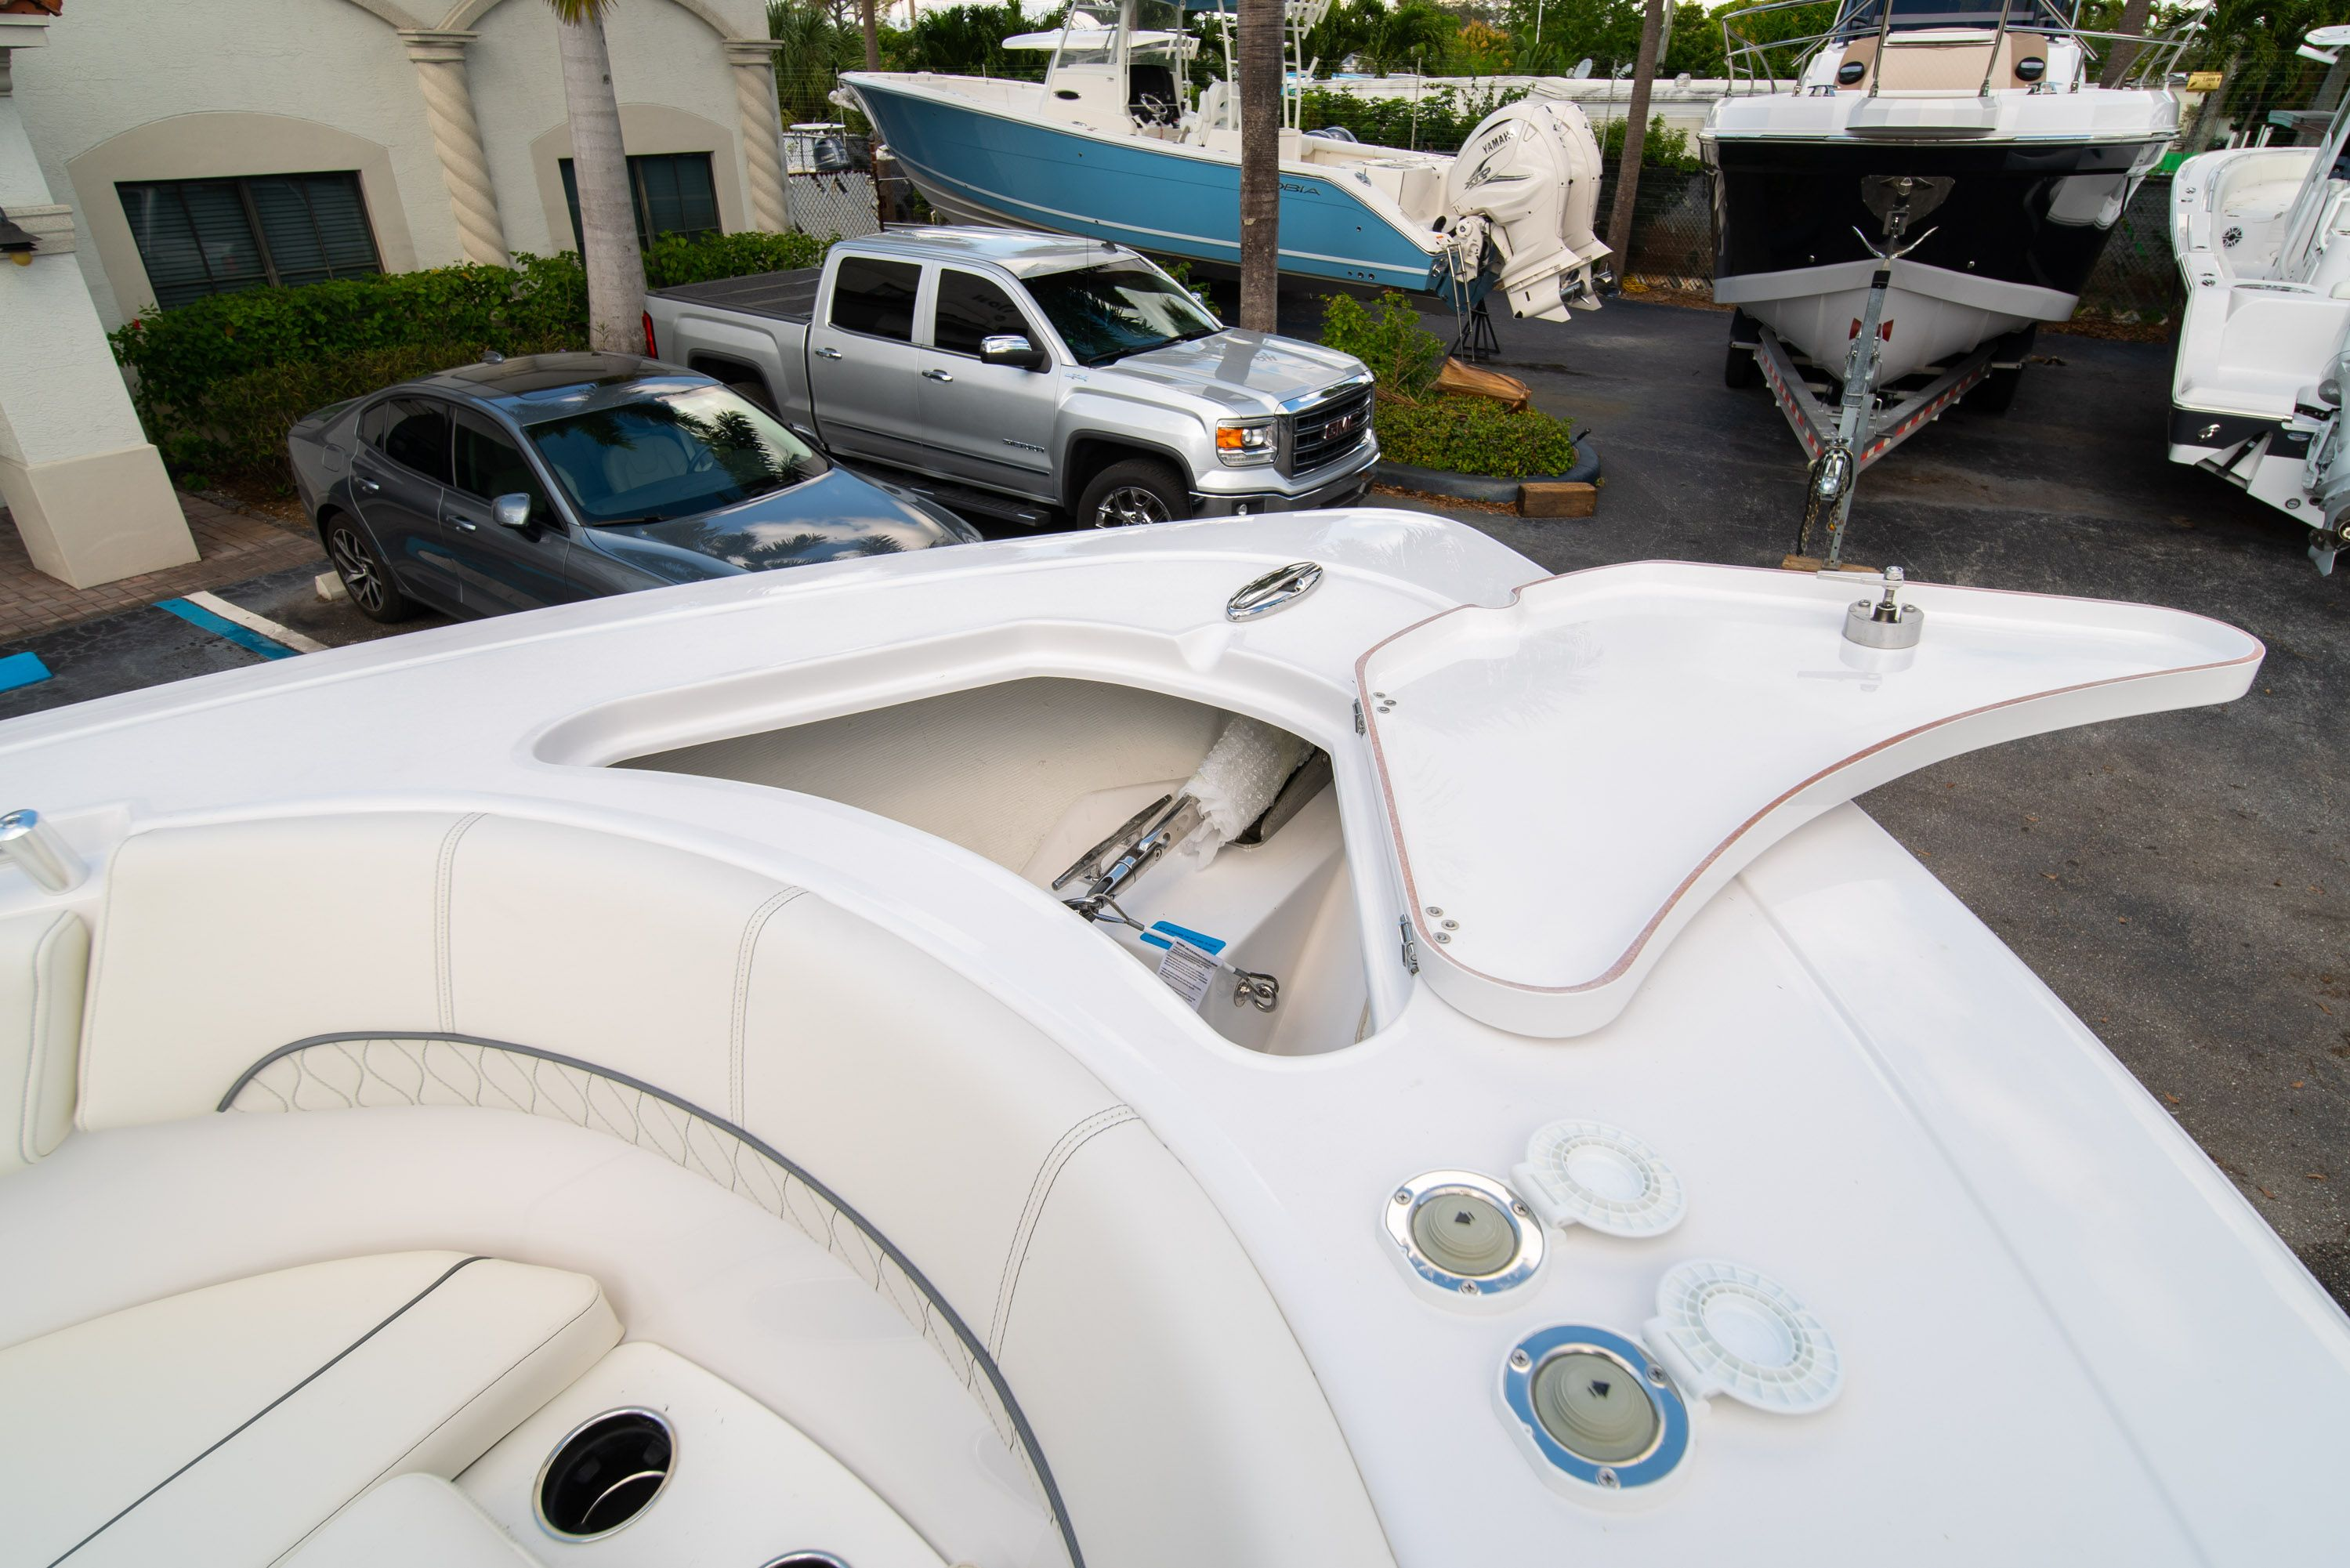 Thumbnail 44 for New 2020 Sportsman Heritage 251 Center Console boat for sale in West Palm Beach, FL